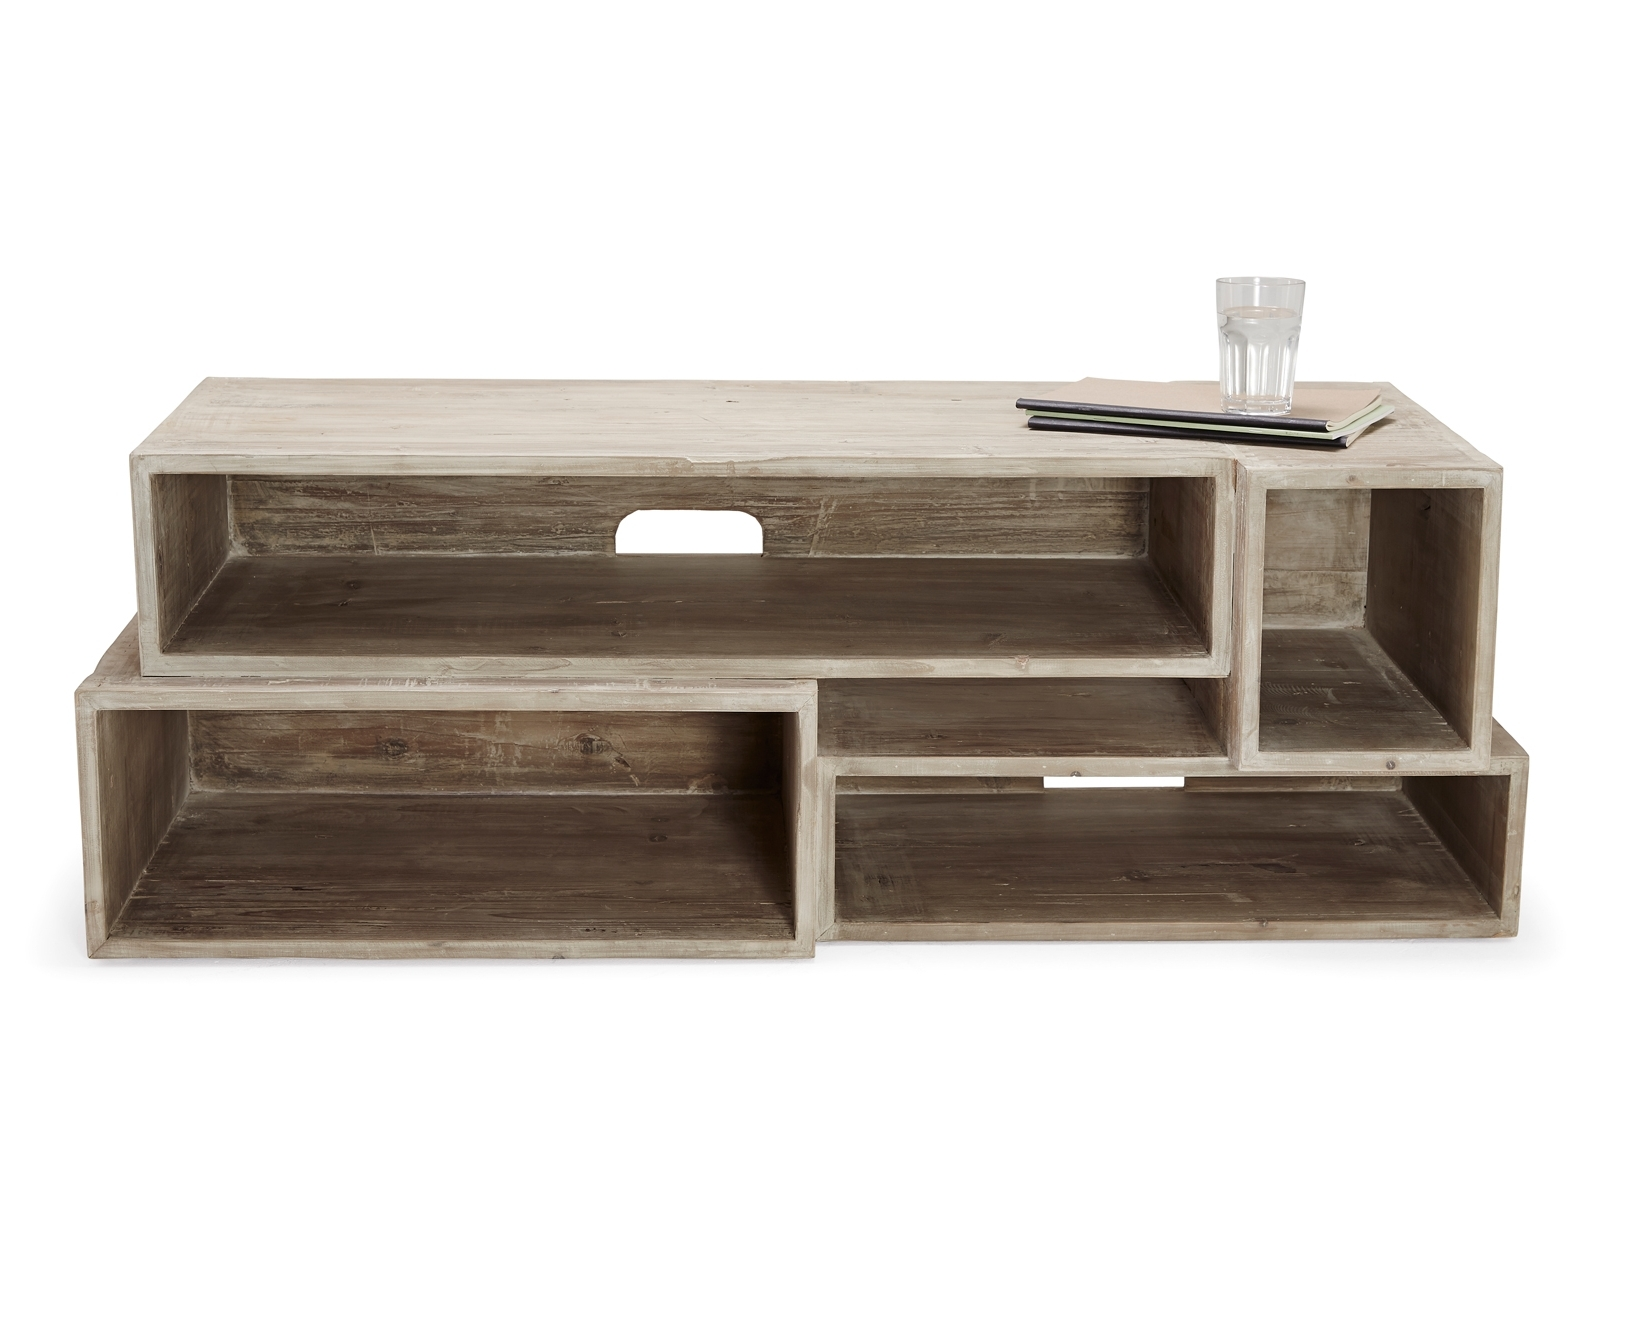 Crate Style Tv Stand (View 3 of 15)